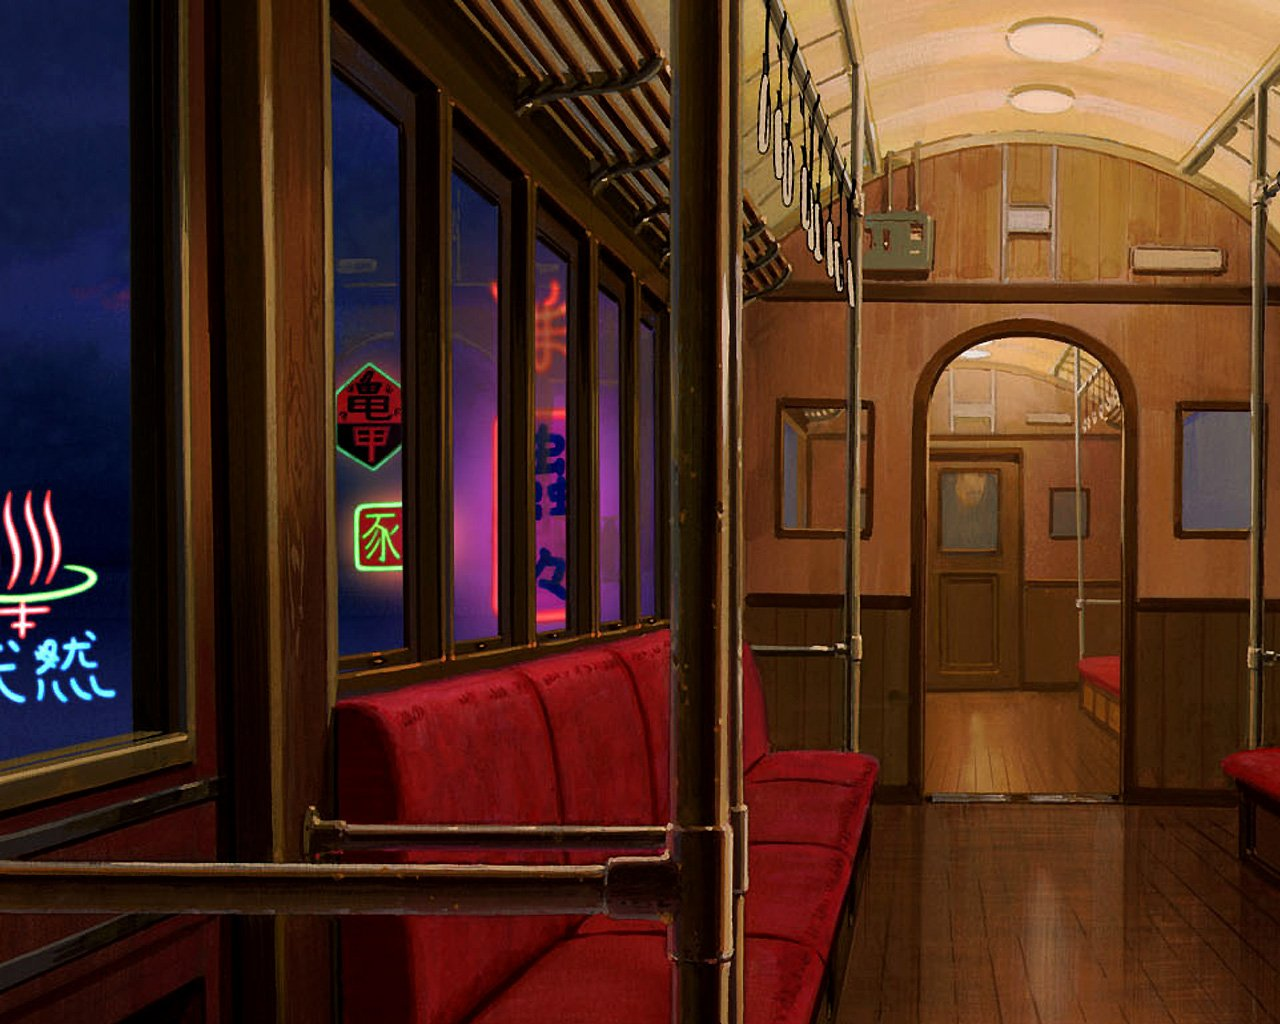 Free Download Spirited Away Wallpaper Train Wallpaper Wallpaper Hd Background 1280x1024 For Your Desktop Mobile Tablet Explore 74 Spirited Away Wallpapers Howl S Moving Castle Wallpaper No Face Spirited Away Wallpaper